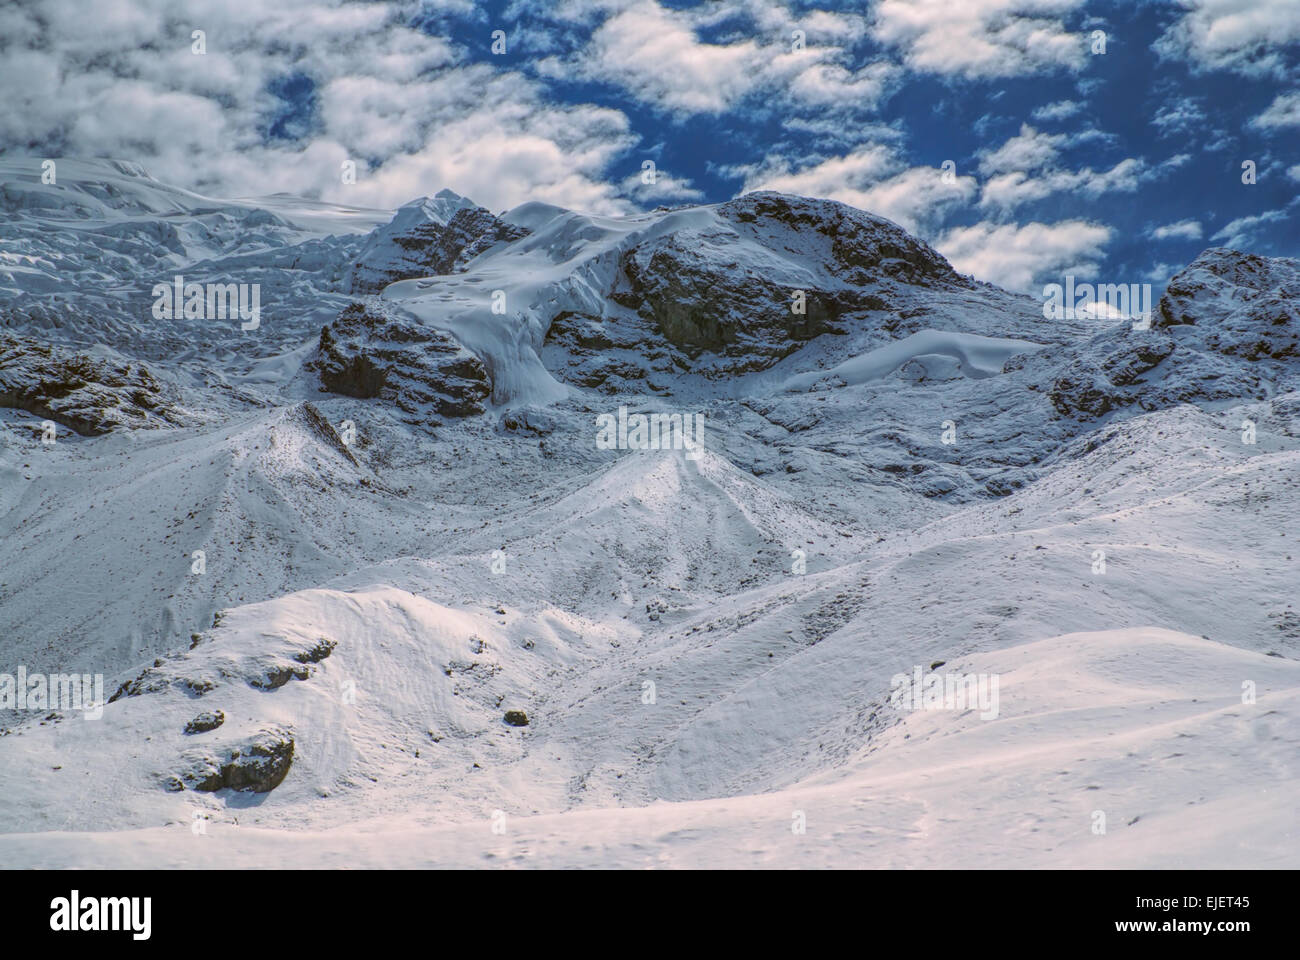 Scenic view of high altitude south american Andes in Peru, Ausangate - Stock Image